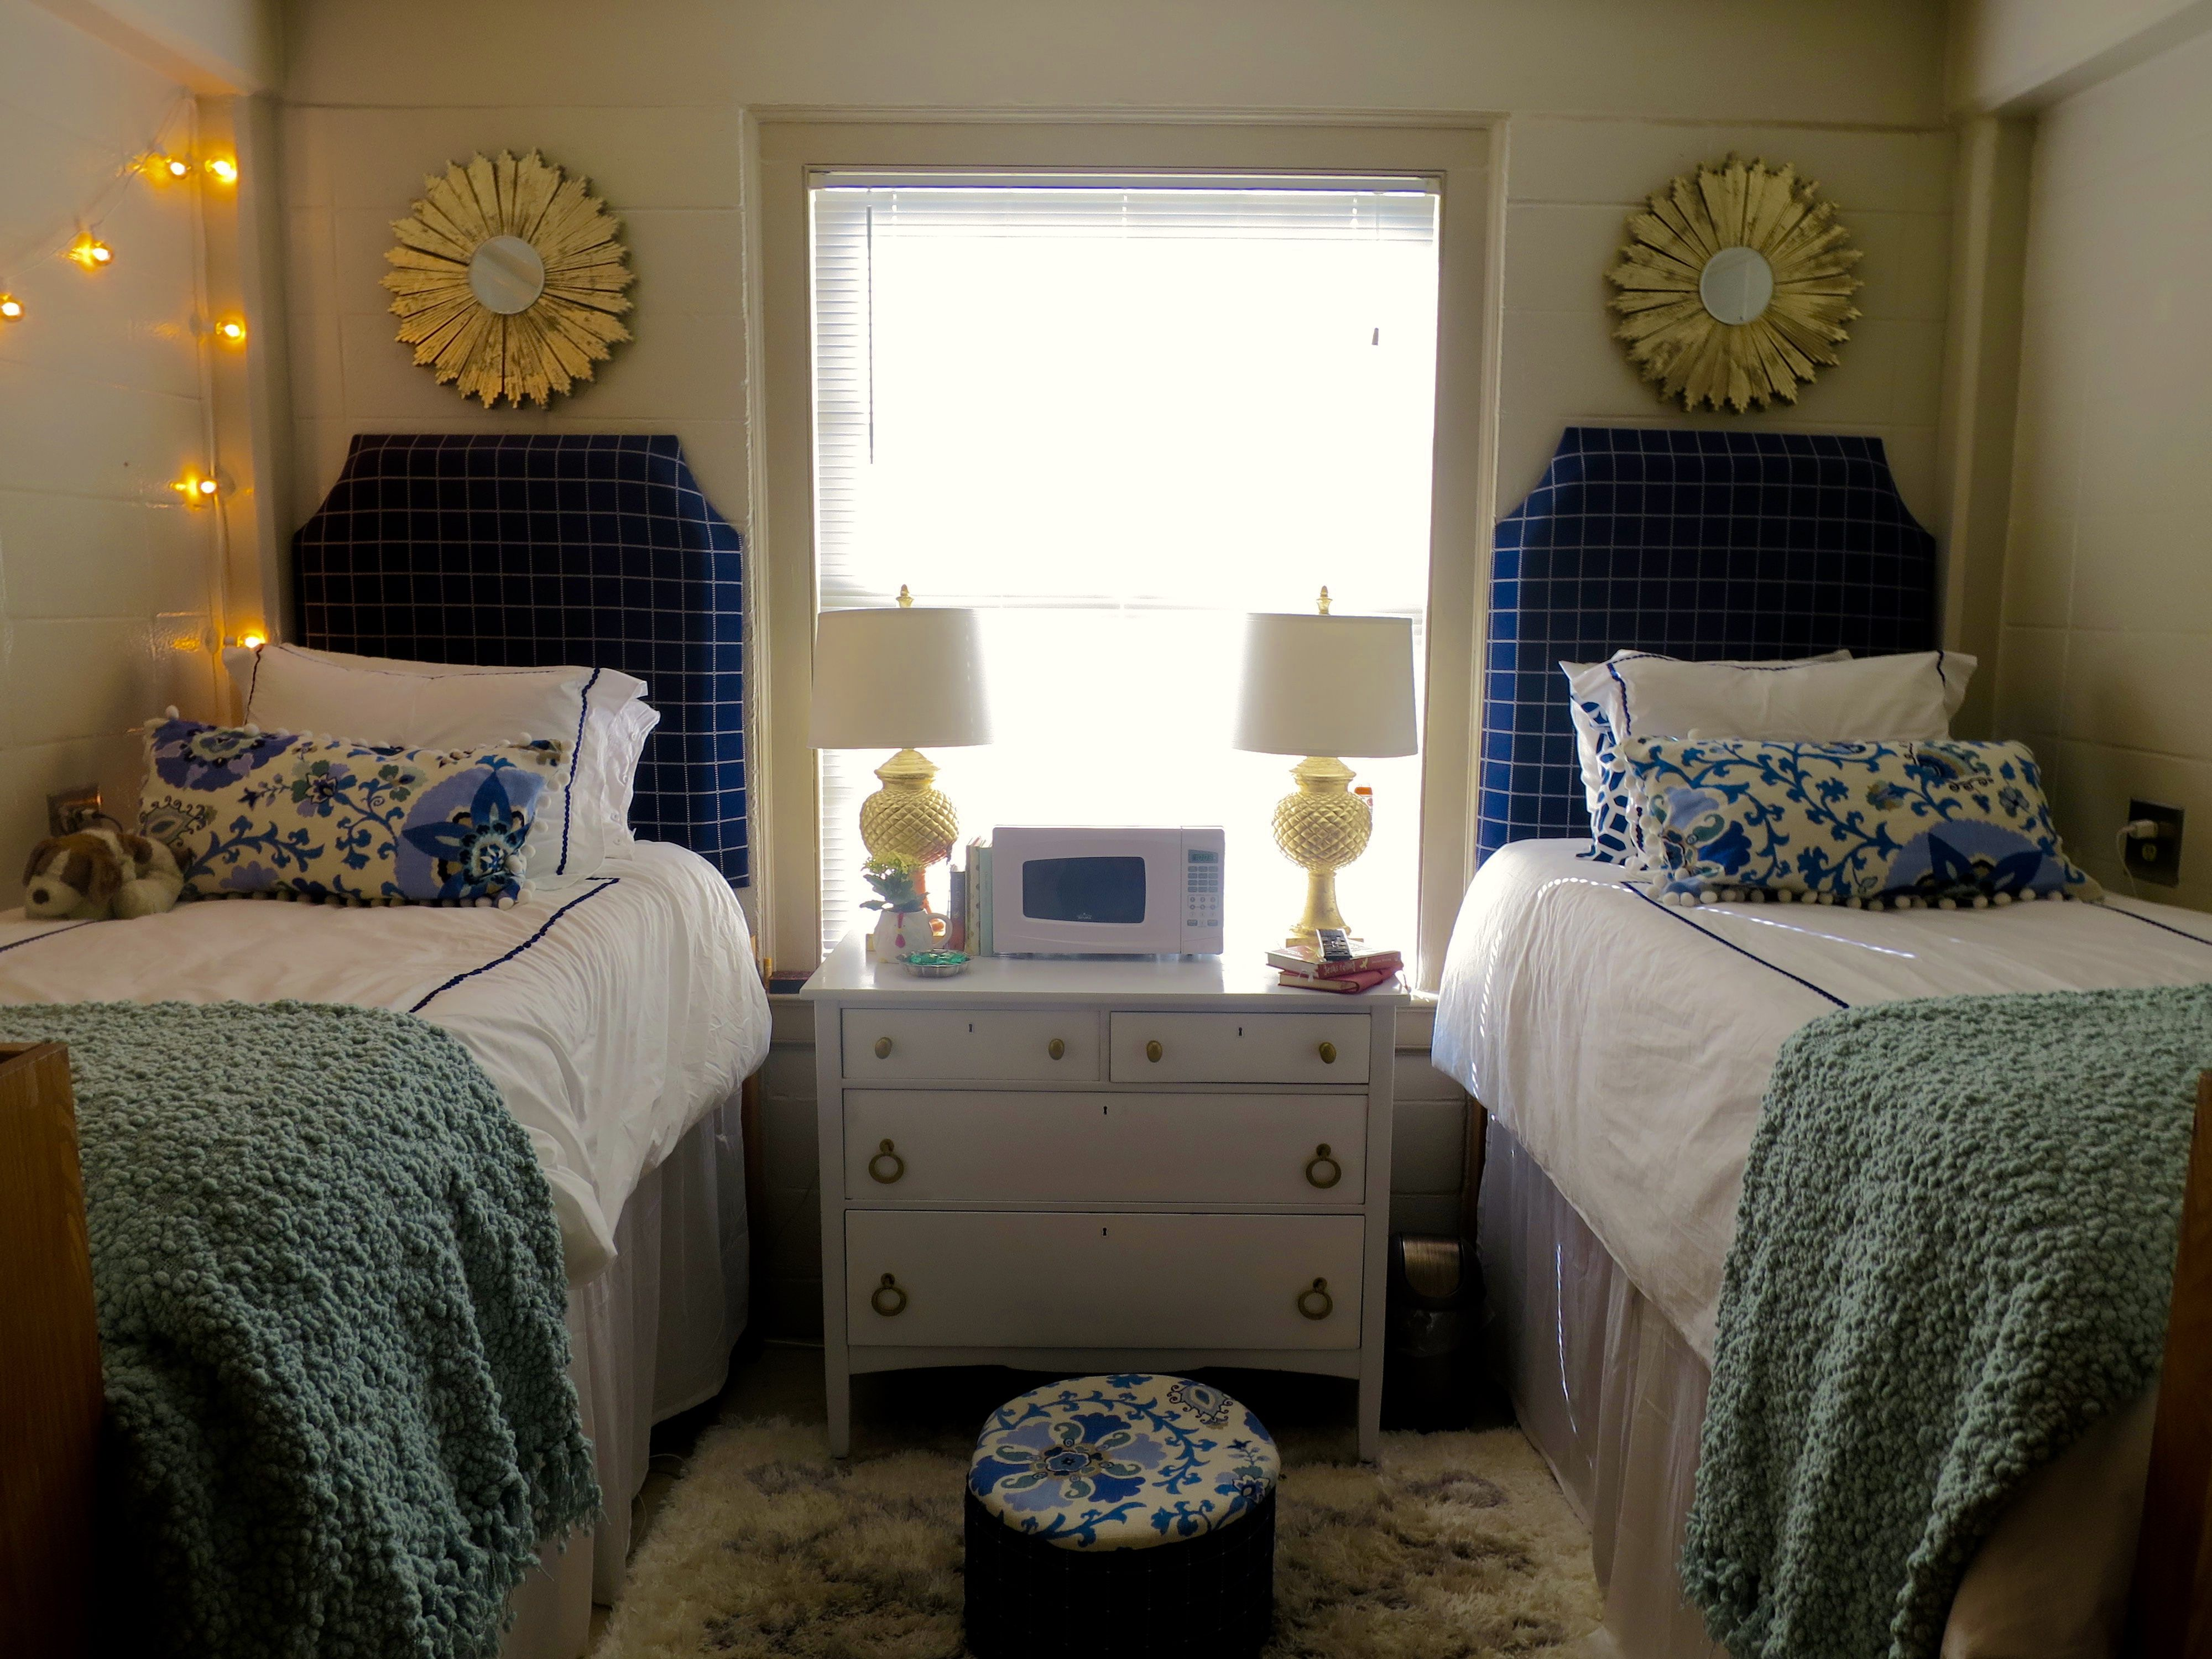 Freshman Year Dorm Room At Samford University! Part 78